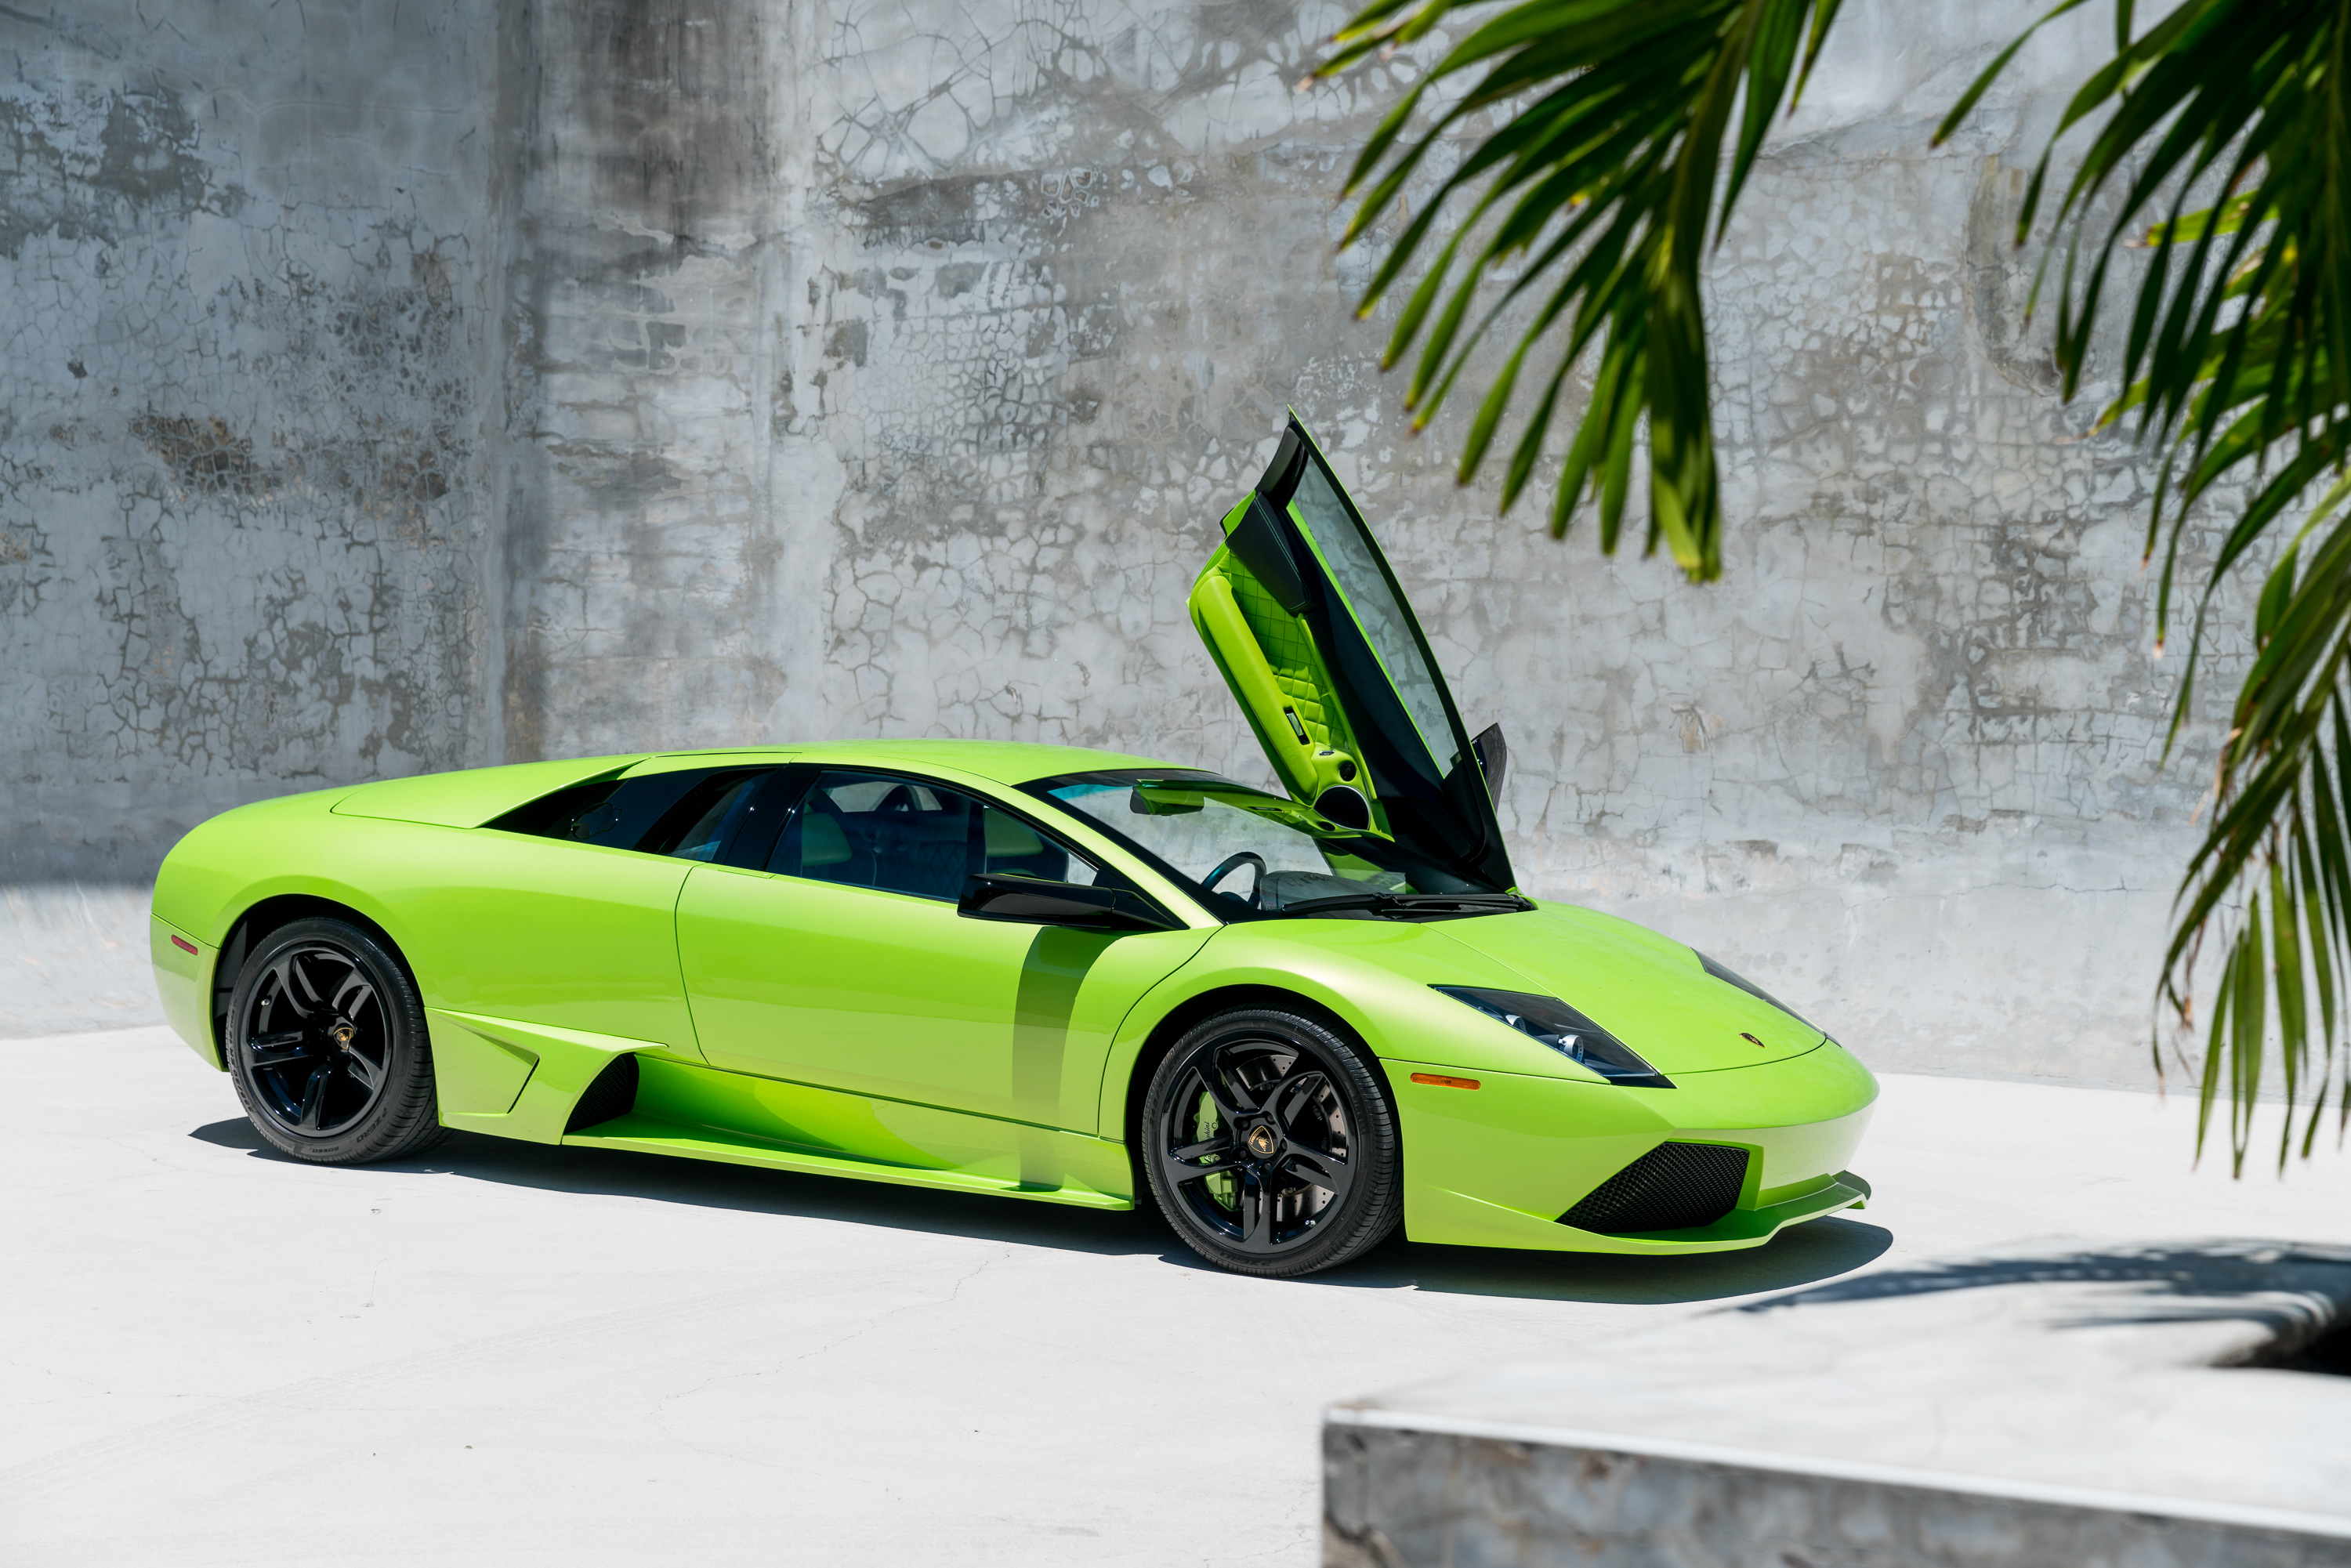 2008 Lamborghini Lp640 Manual For Sale Curated Vintage Classic